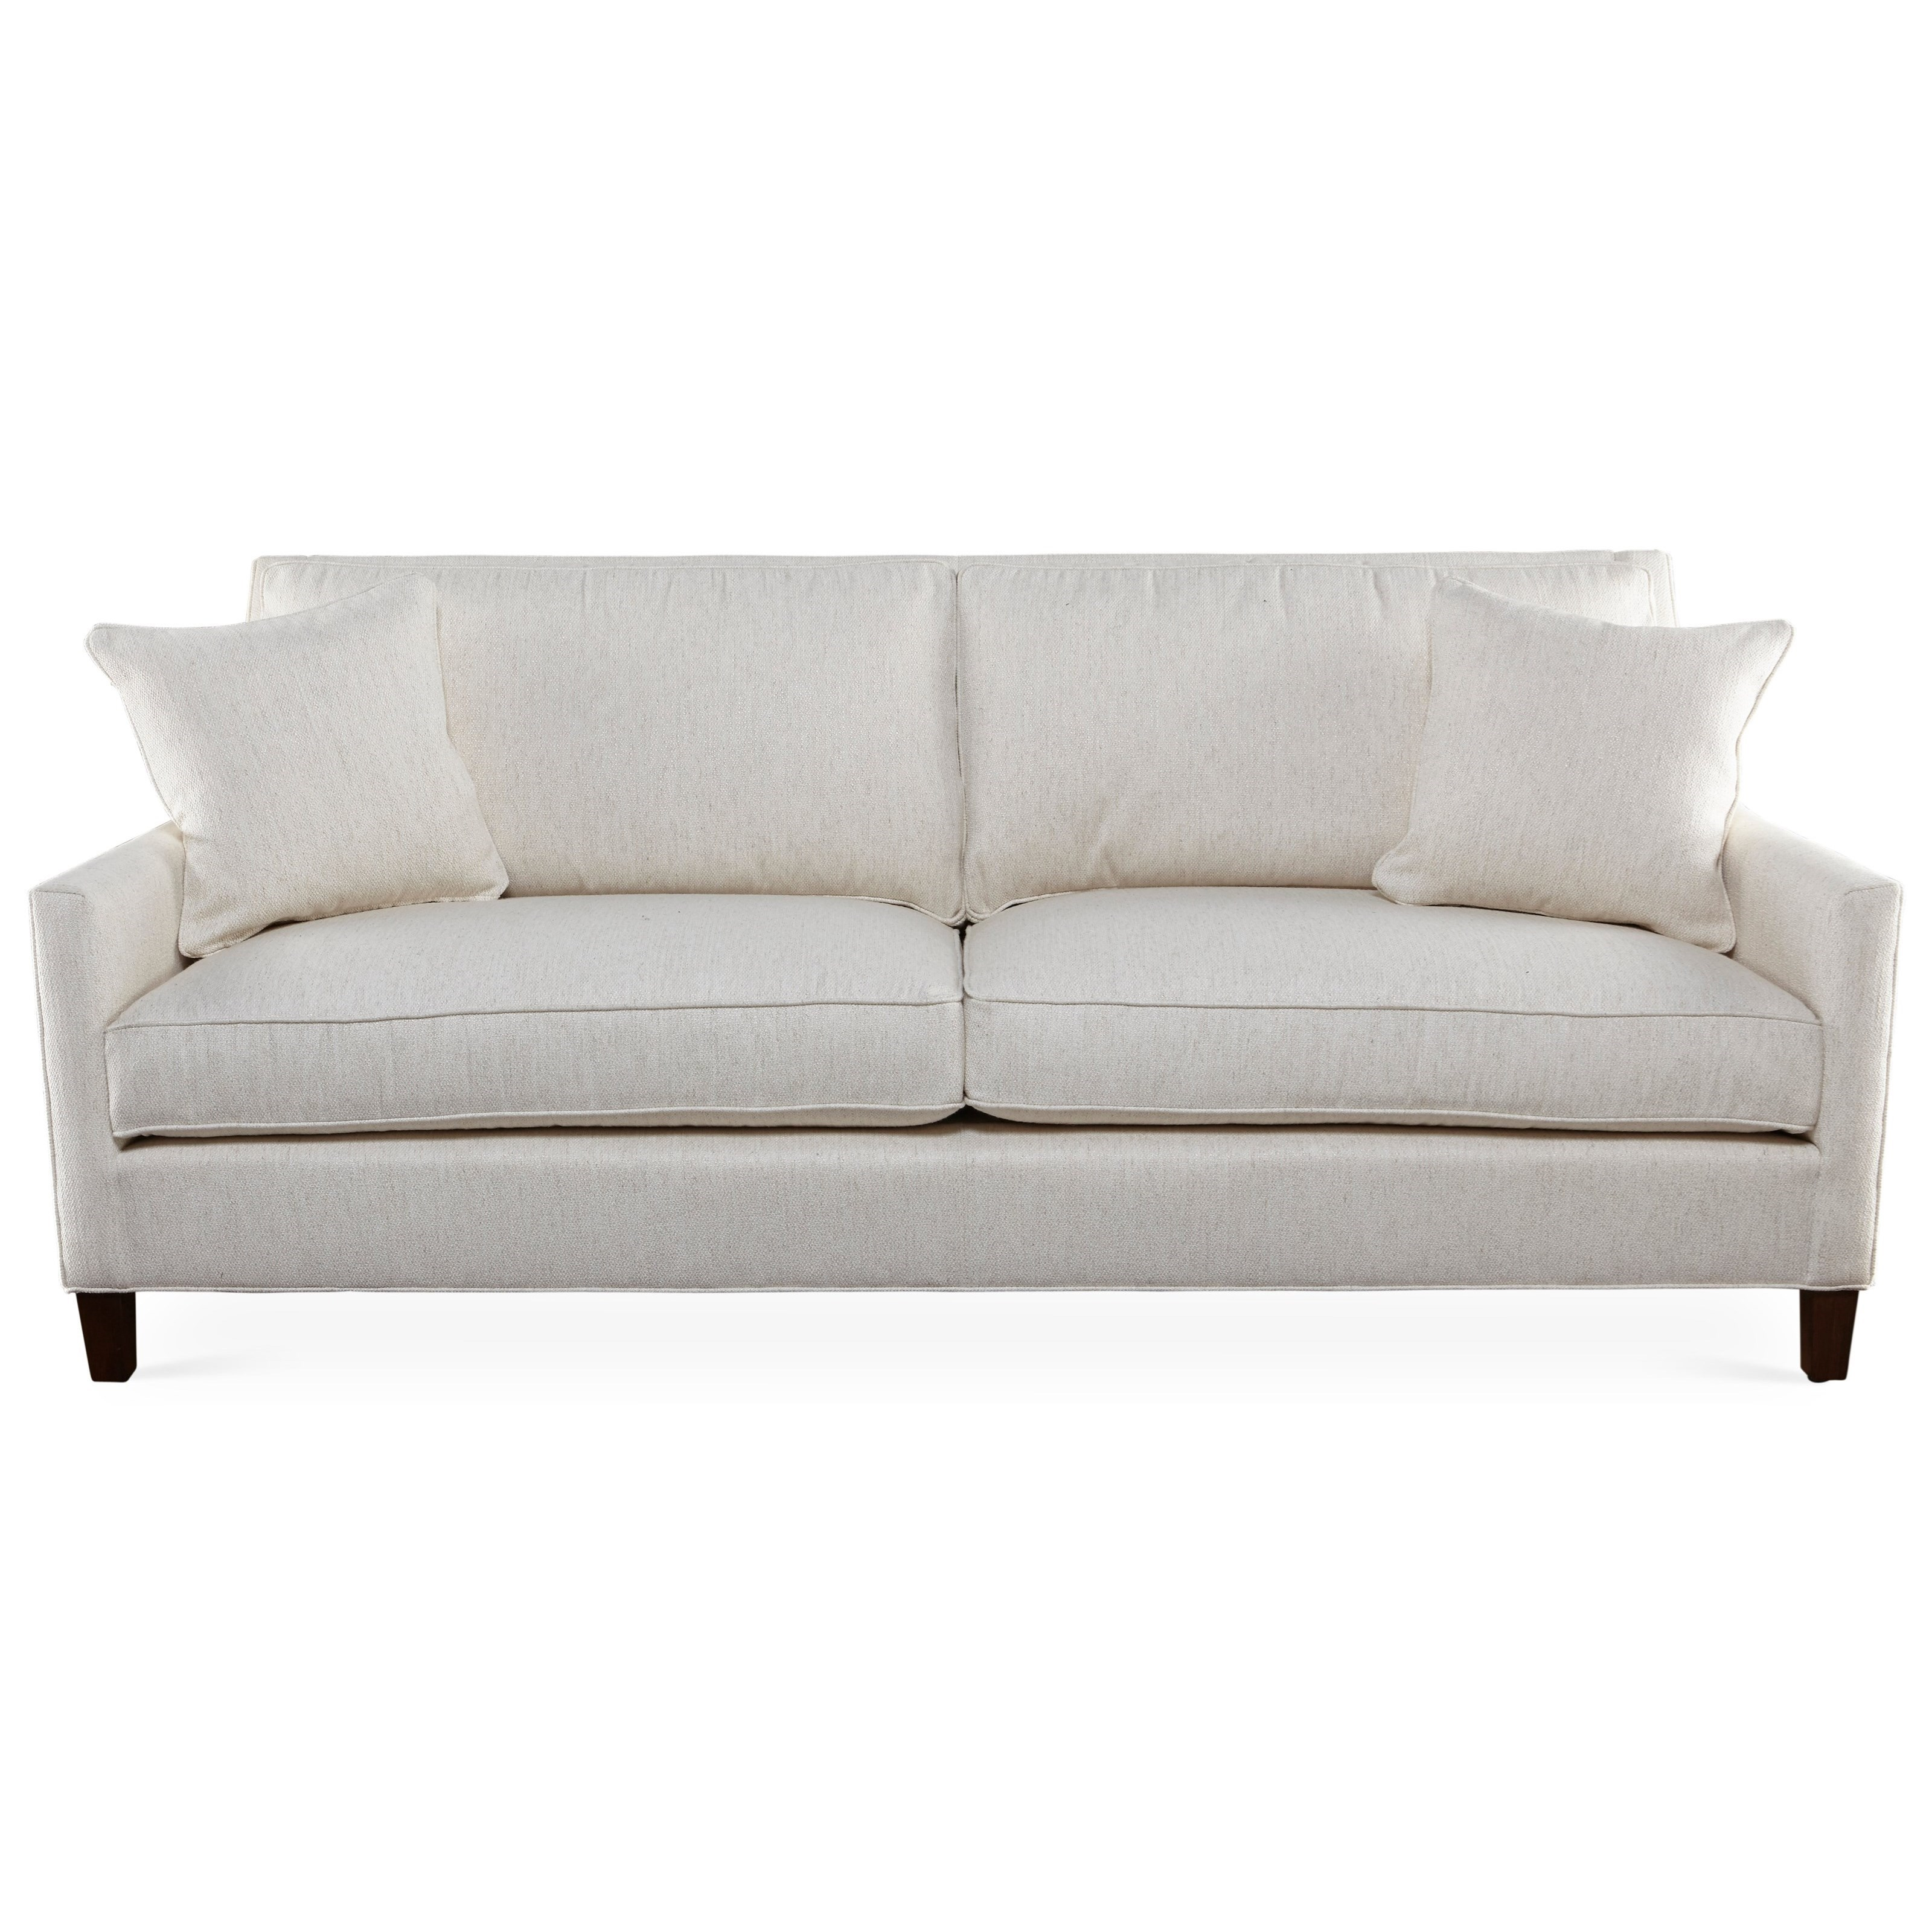 Contemporary Two Cushion Sofa with Framed Back